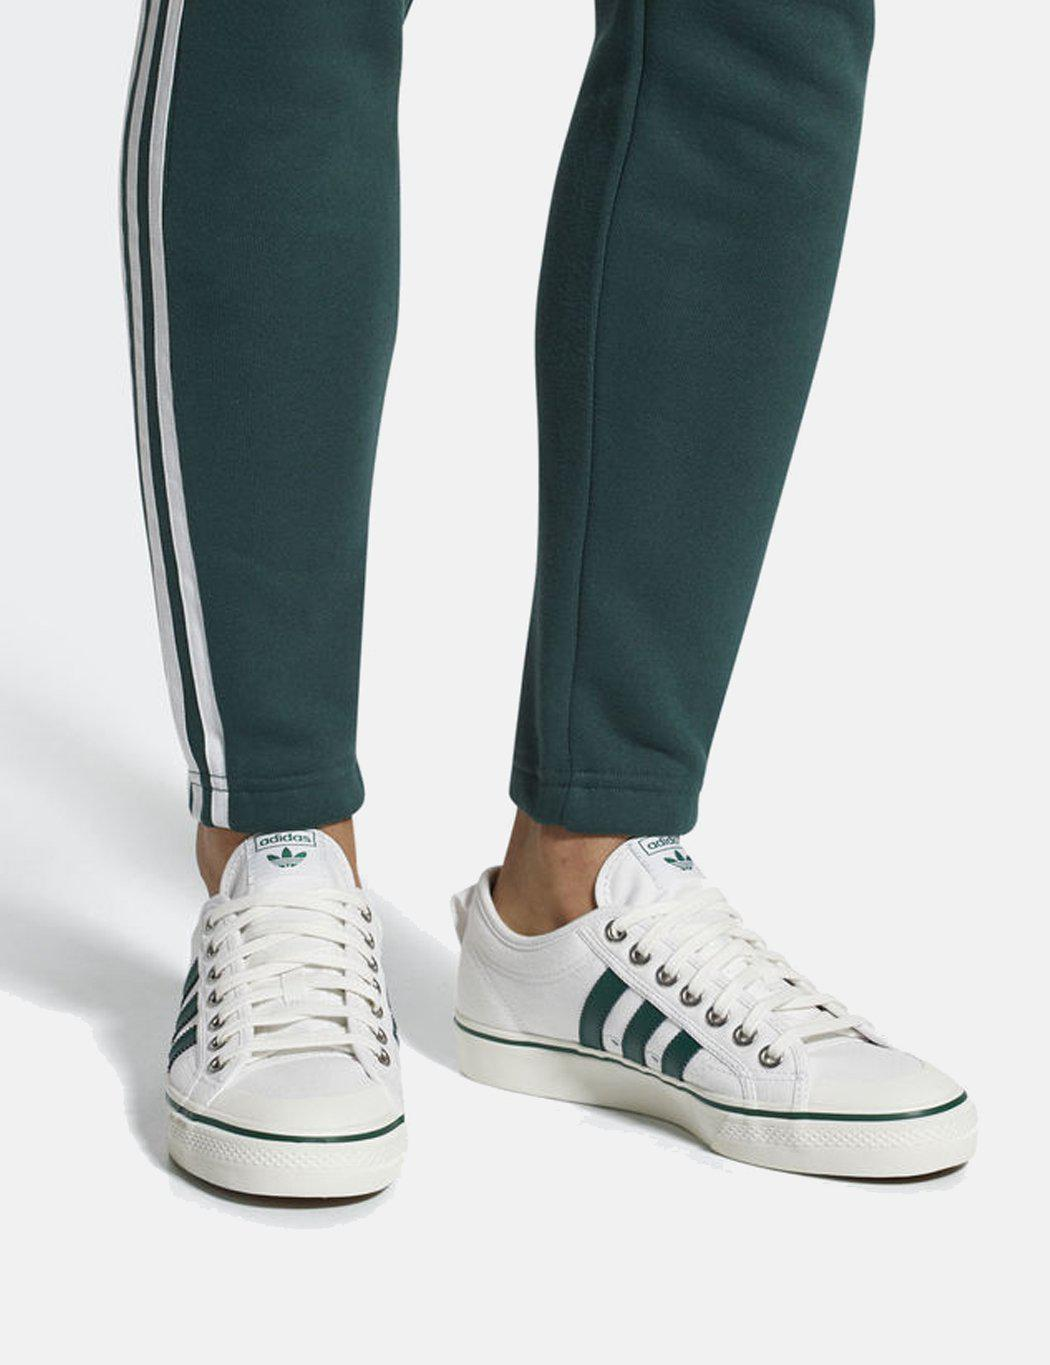 adidas nizza trainers for men